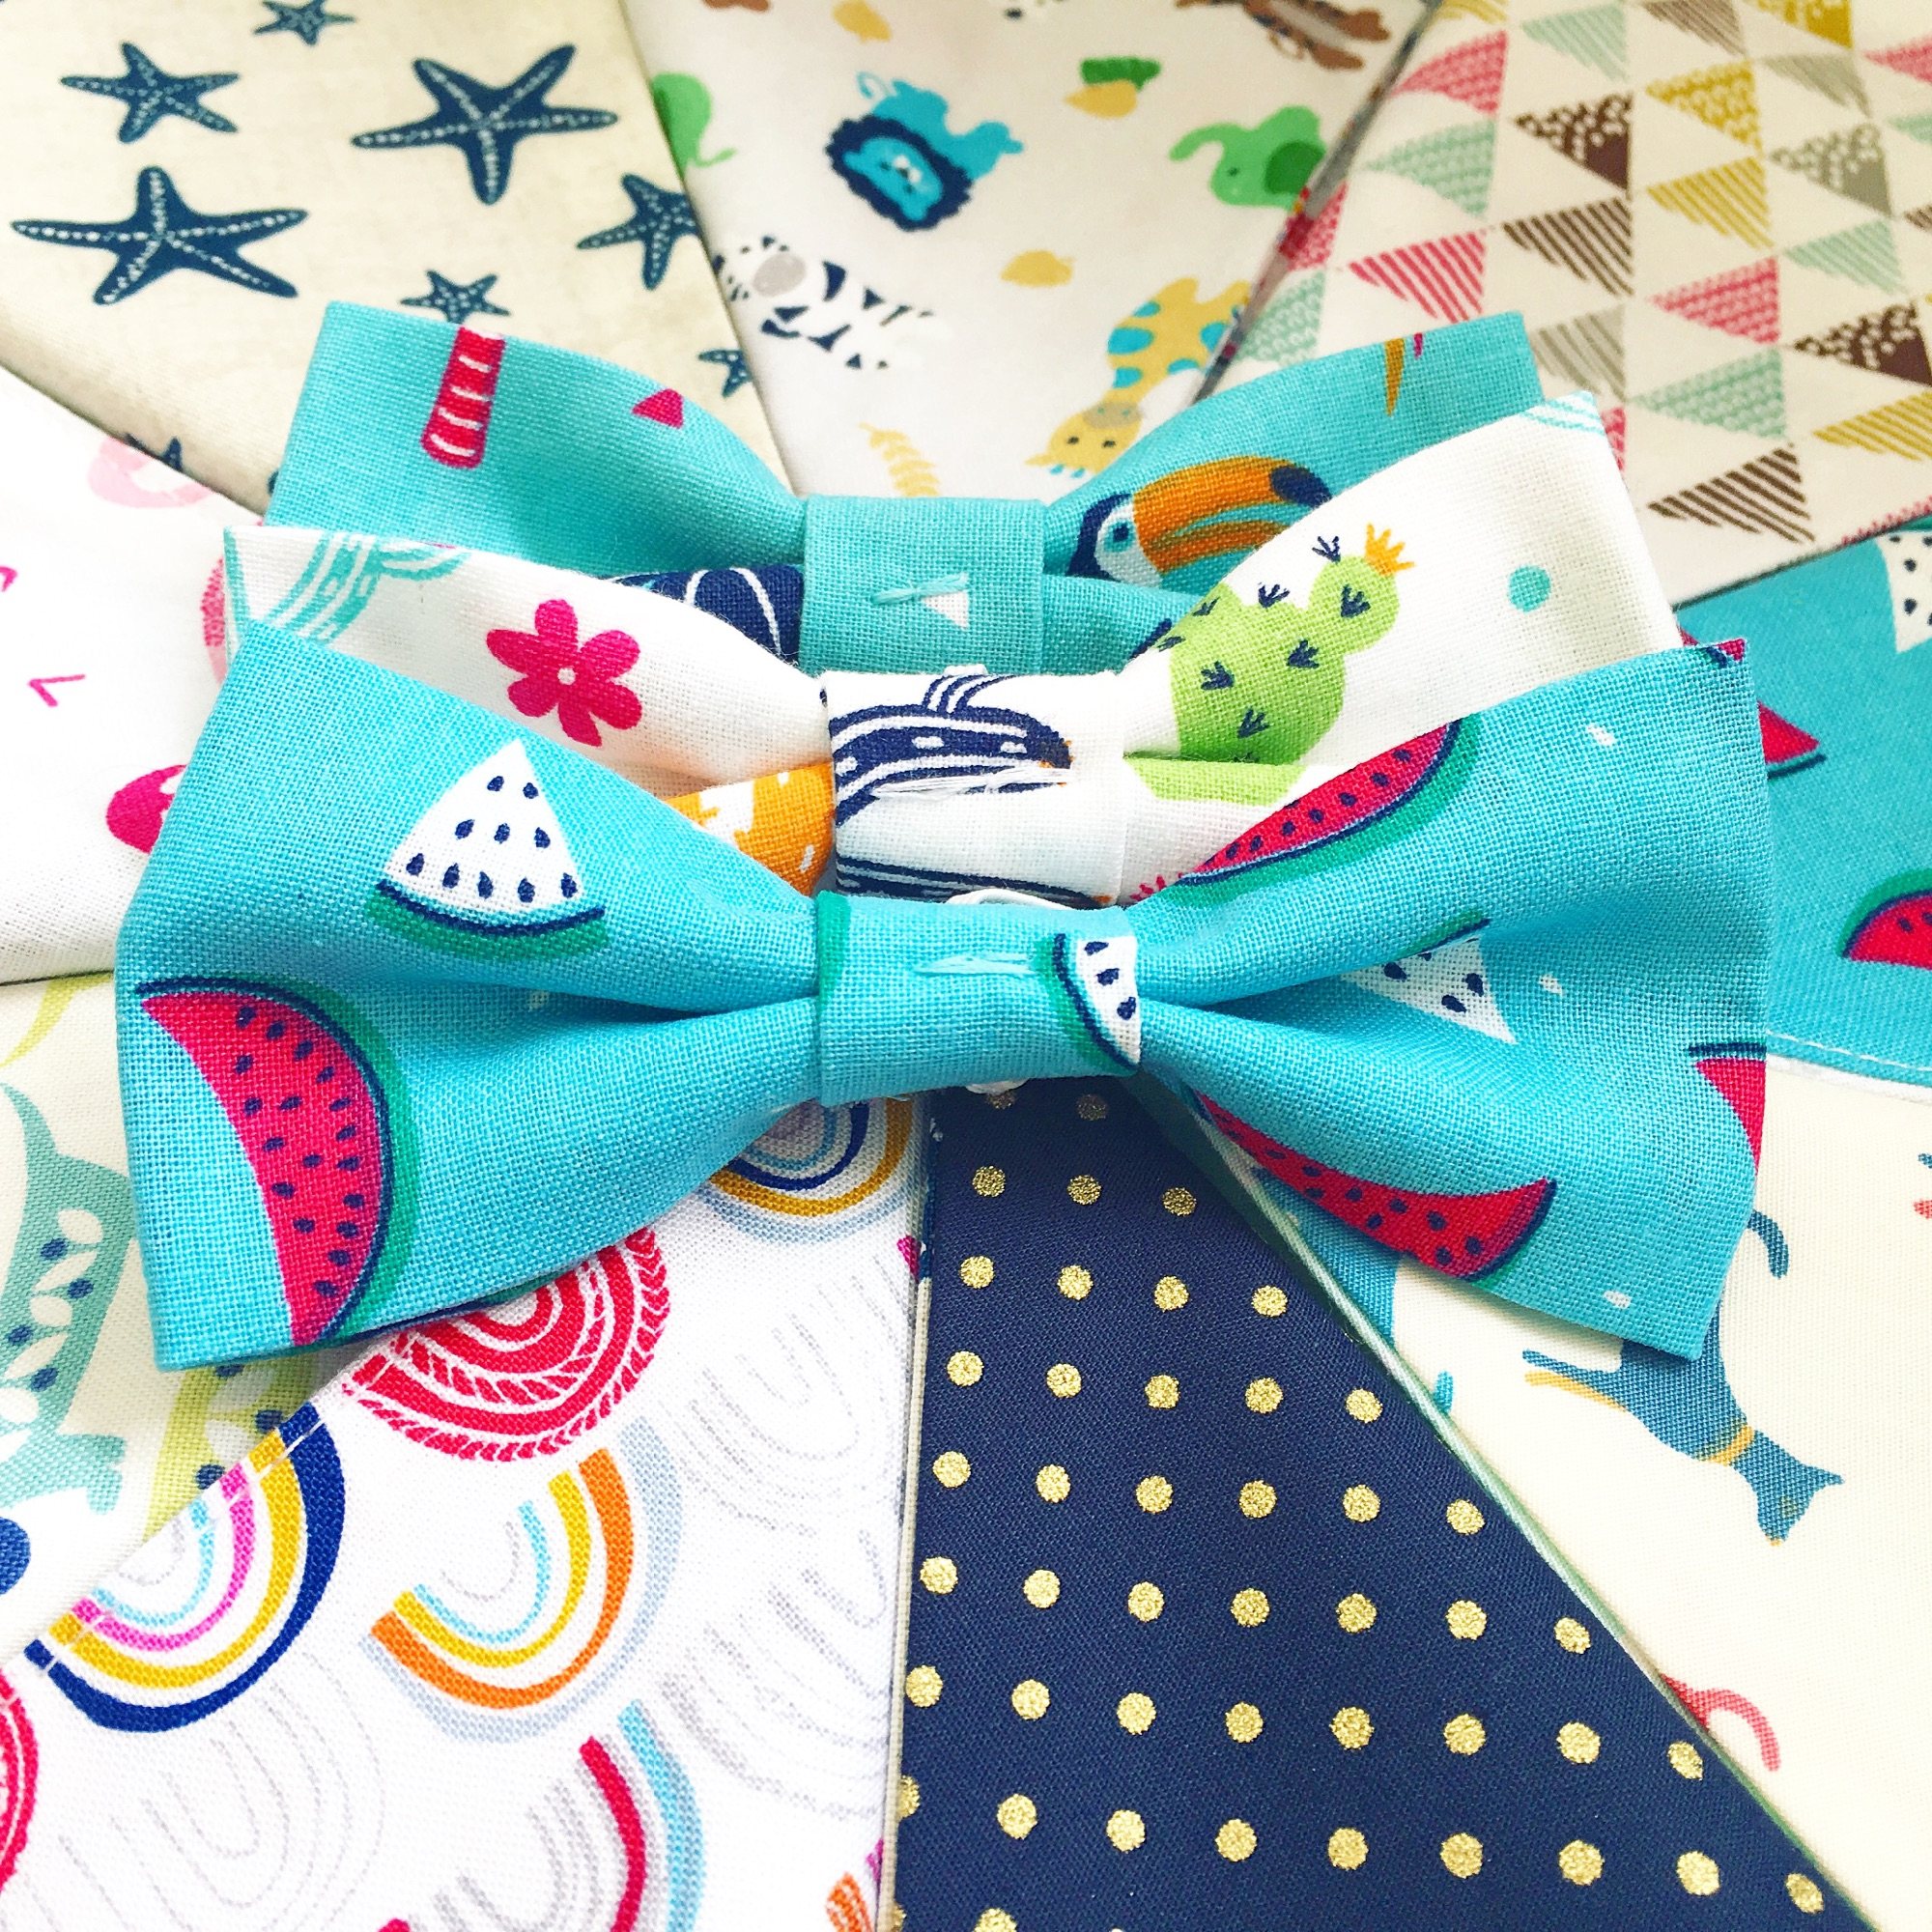 Read all about Tommi's new dog bow ties in his blog